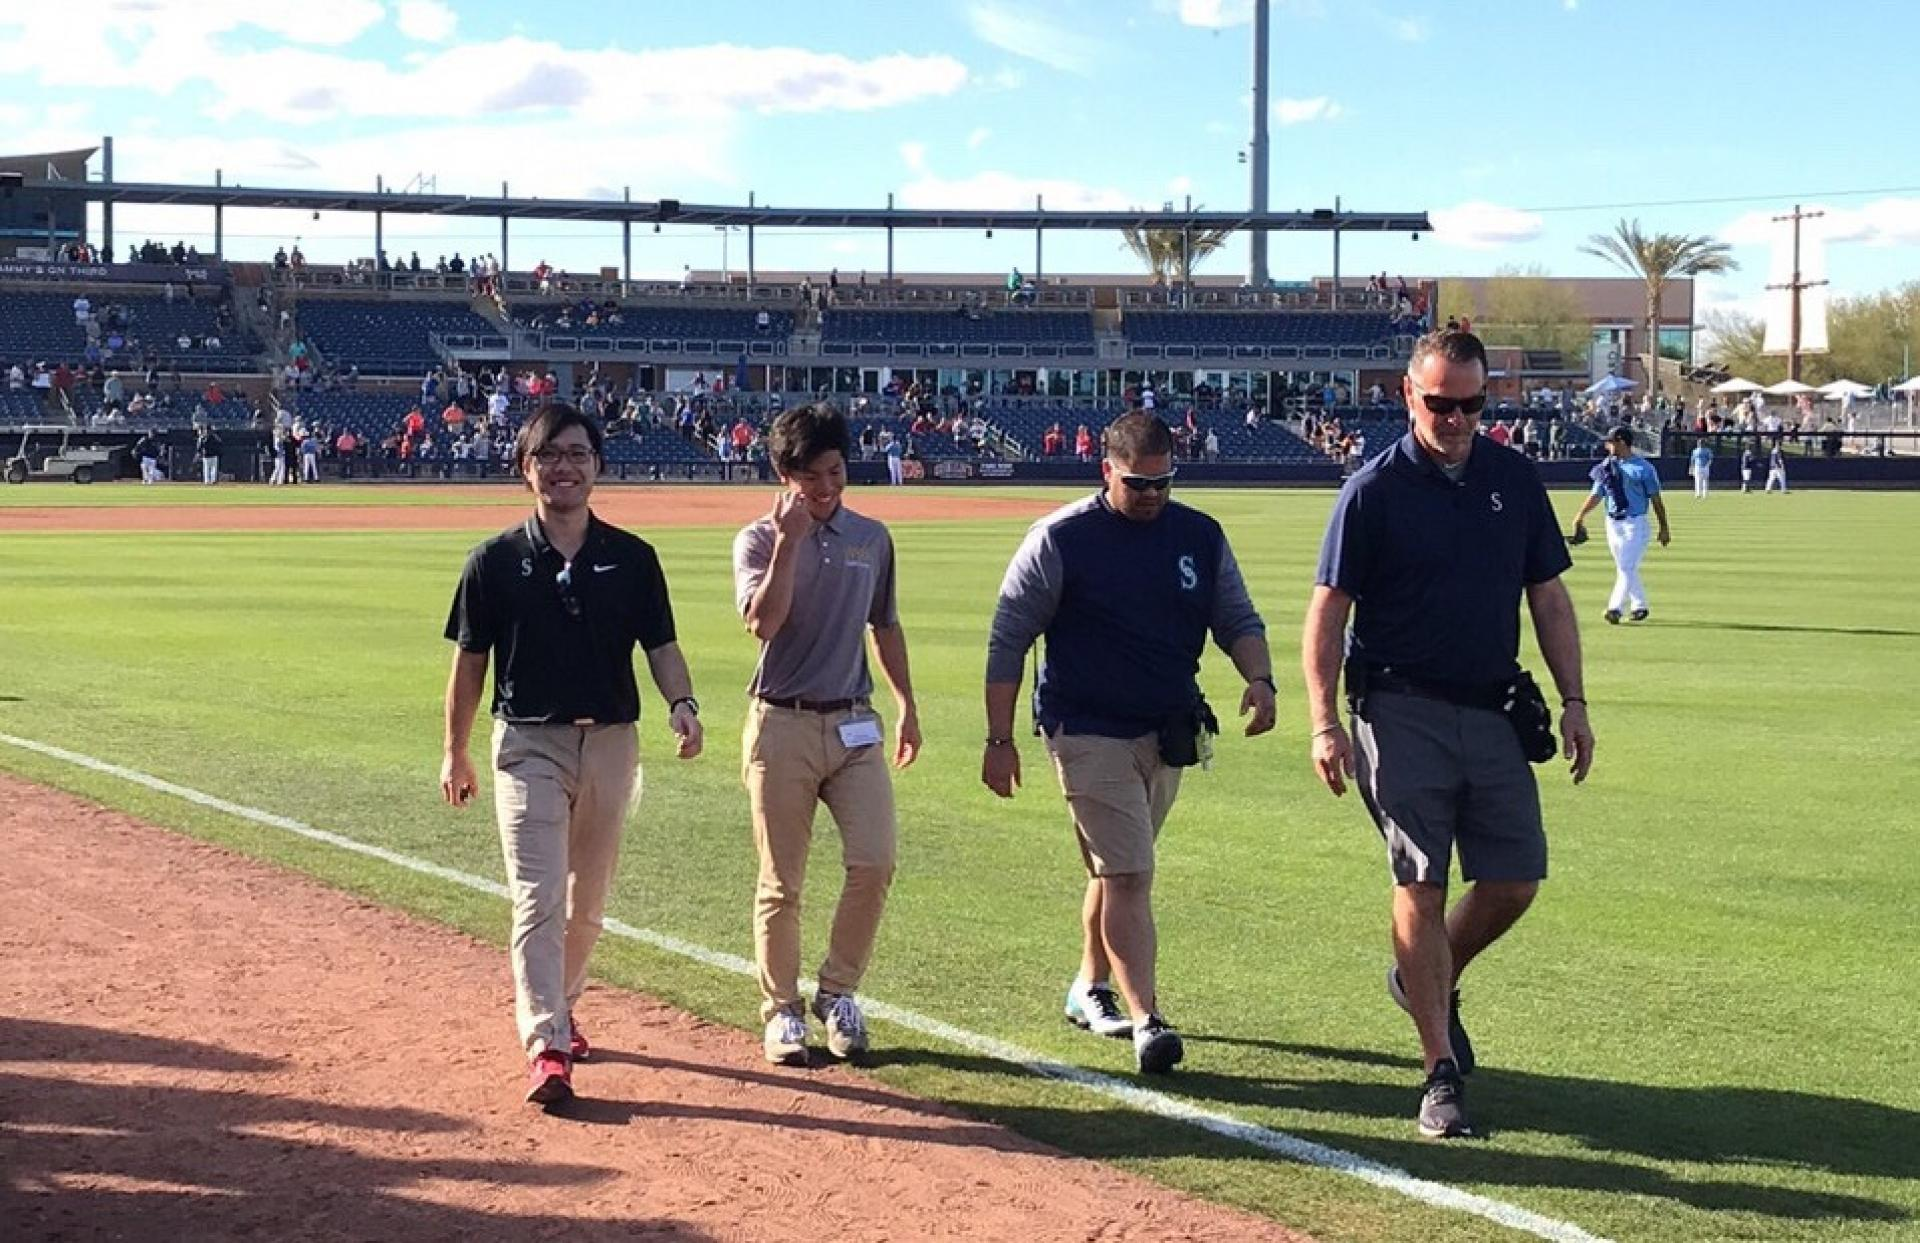 Shota Sato and Seattle Mariners' athletic trainers walk on the field